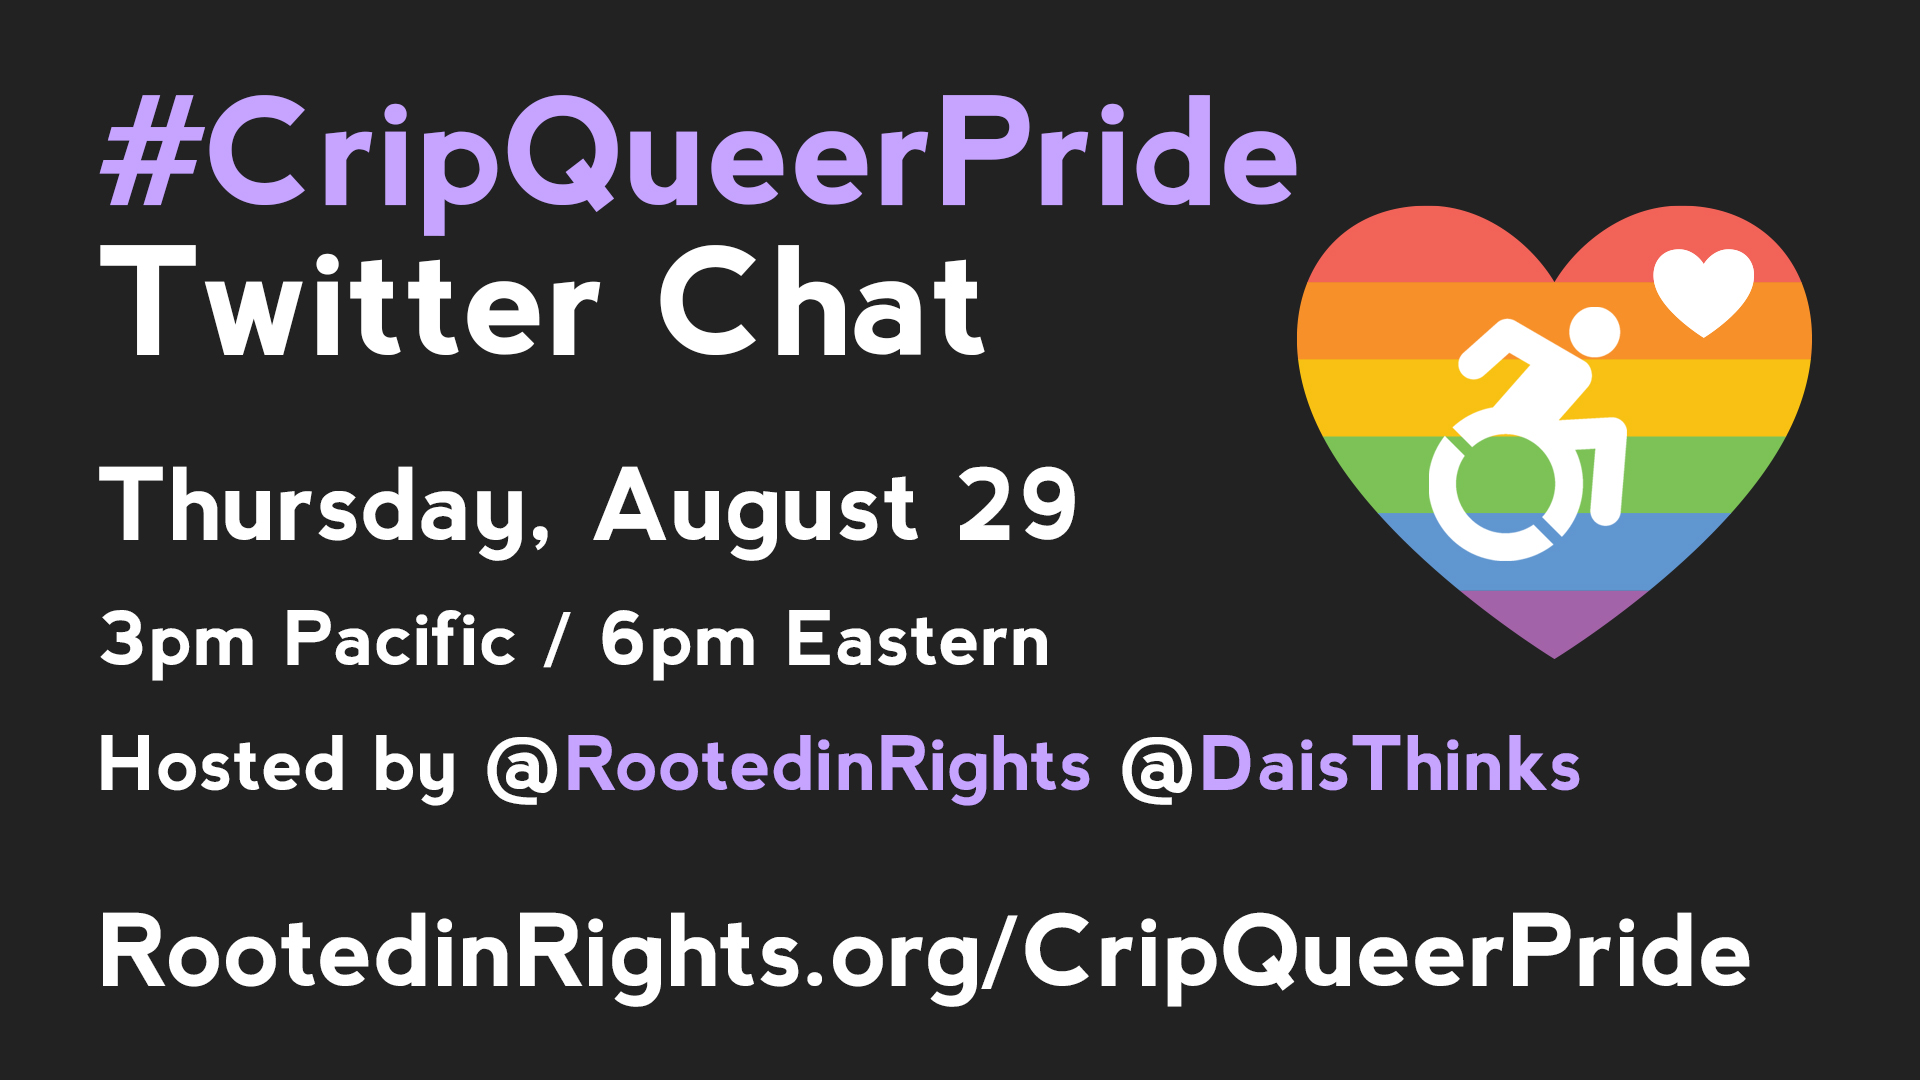 Solid black background with a rainbow heart to the right with the wheelchair logo in the center. To the left of the heart is the following text: #CripQueerPride Twitter Chat. Thursday, August 29, 3pm Pacific / 6pm Eastern. Hosted by @RootedinRights @DaisThinks RootedinRights.org/CripQueerPride